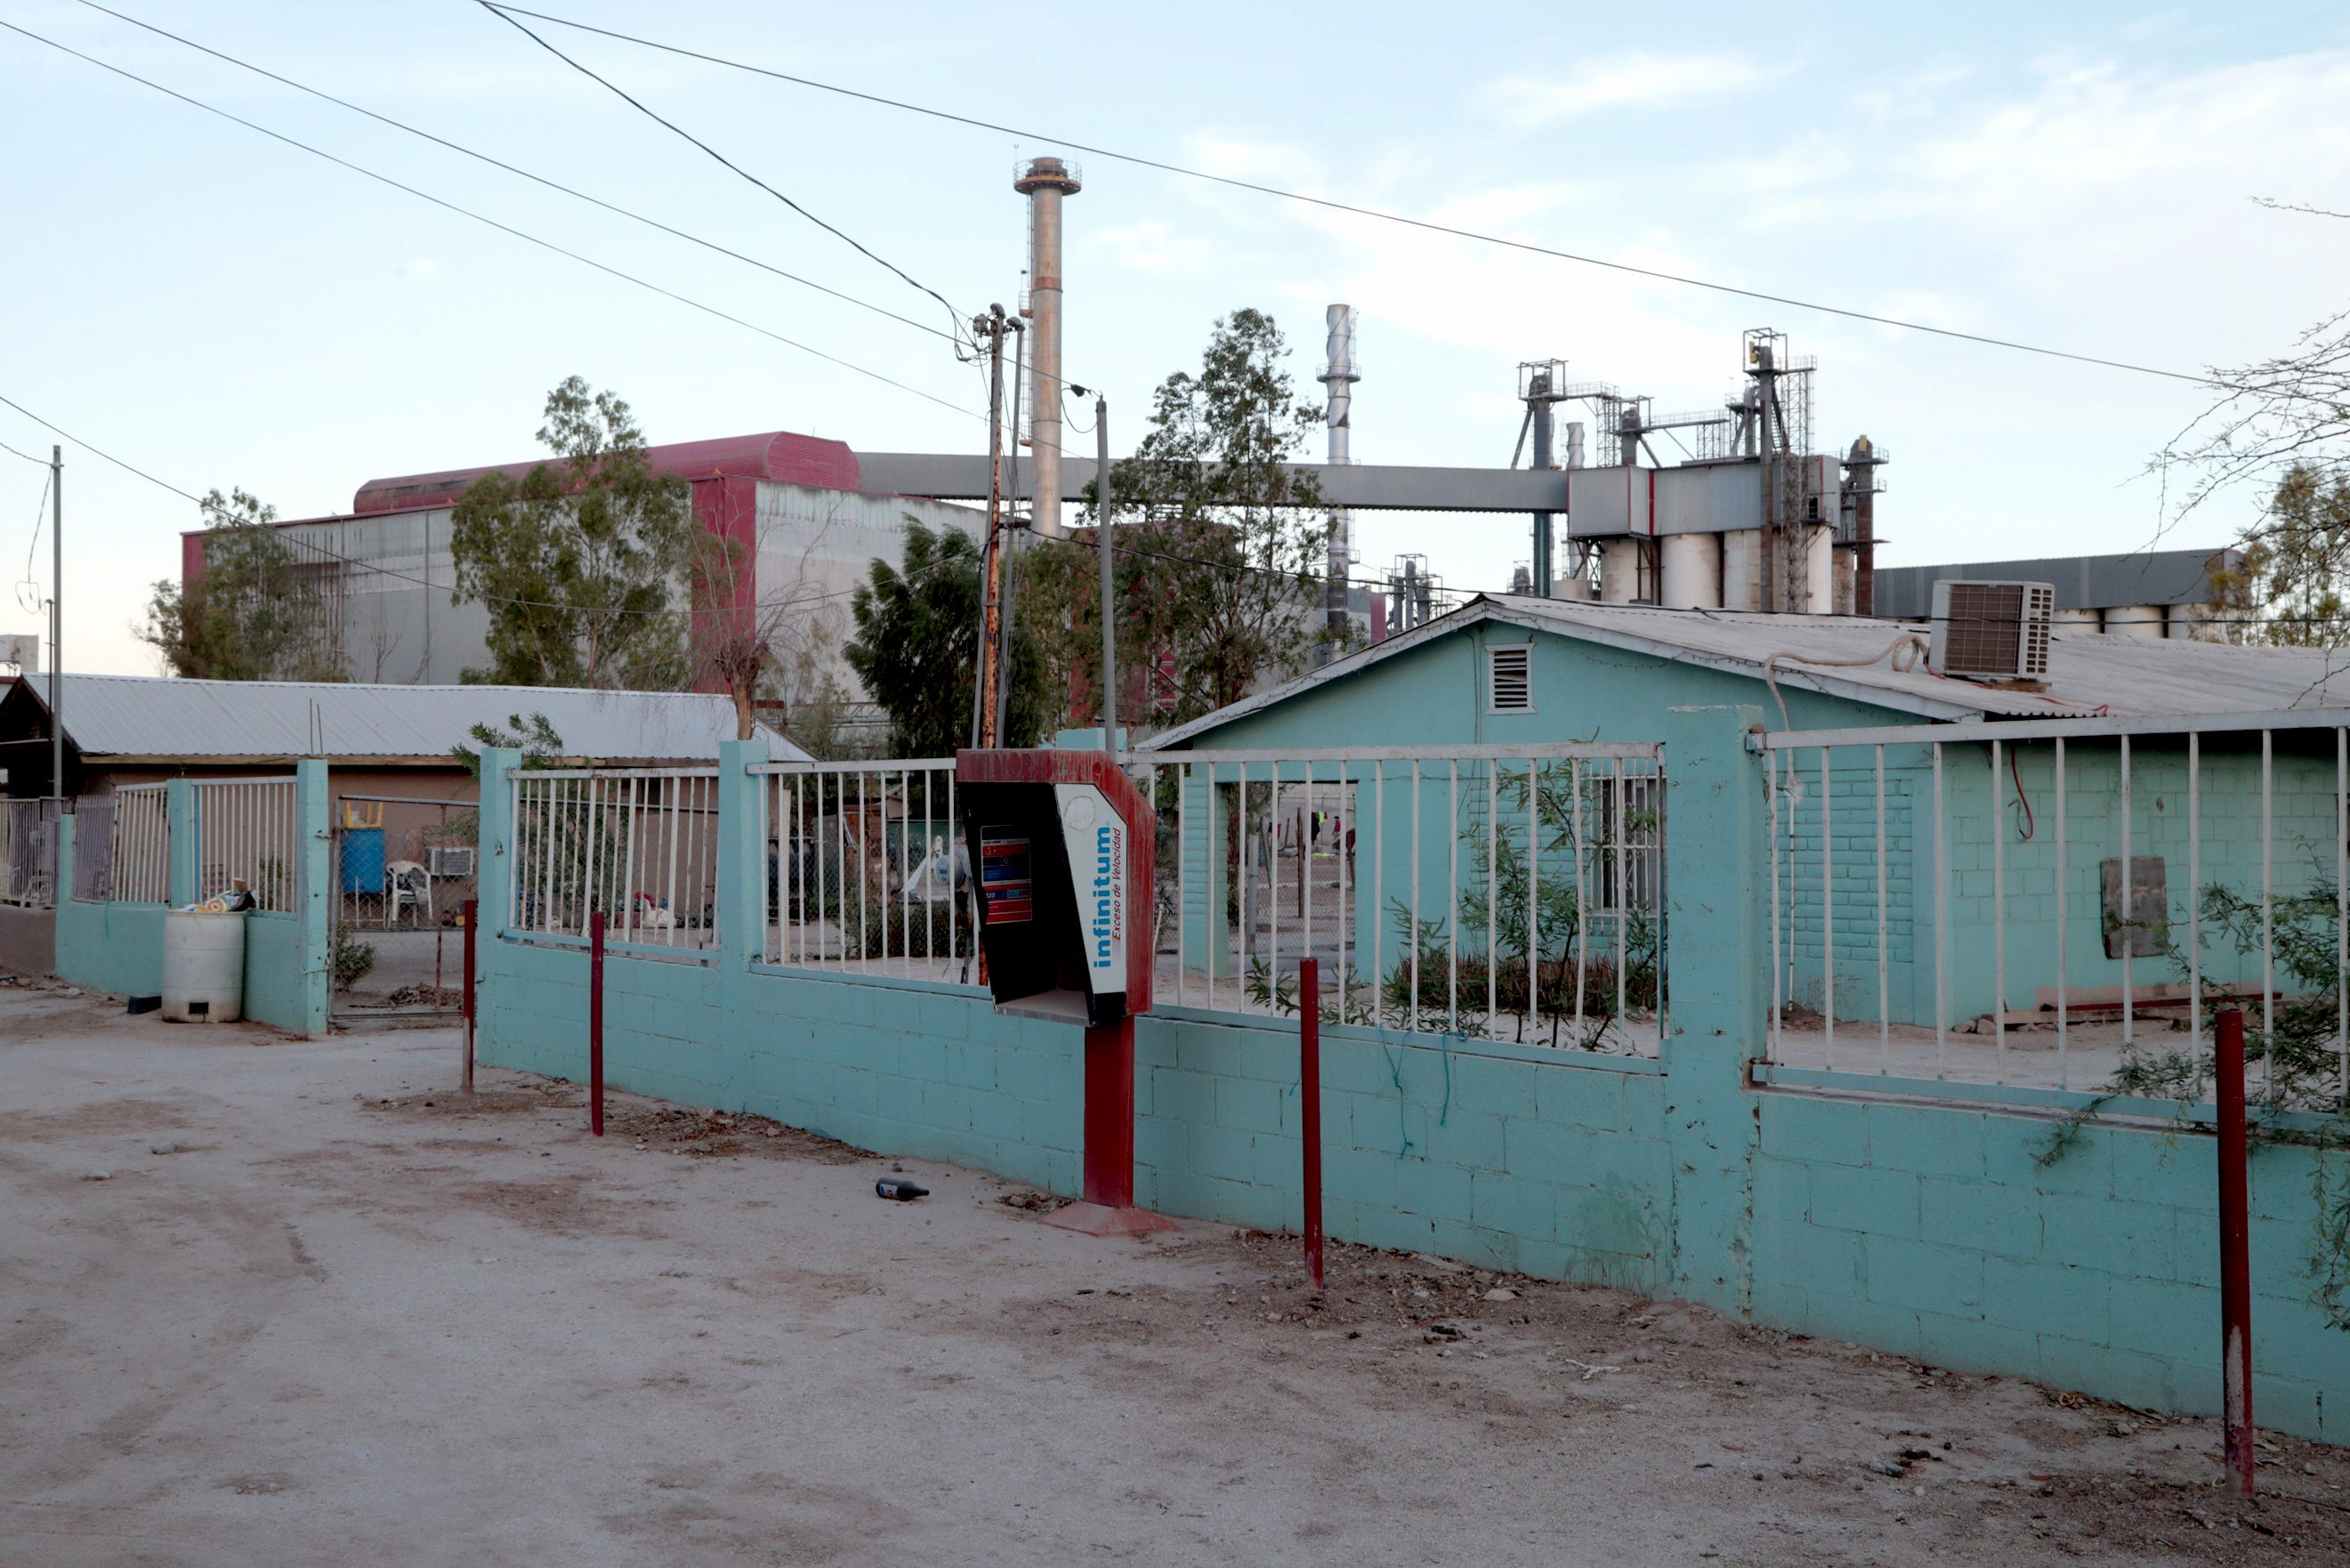 The Fábrica de Envases de Vidrio (Fevisa) factory manufactures glass bottles in Ejido el Choropo, south of Mexicali. The company says it treats some of the city's sewage and uses it in its processes. The company says it does not discharge any industrial wastewater.